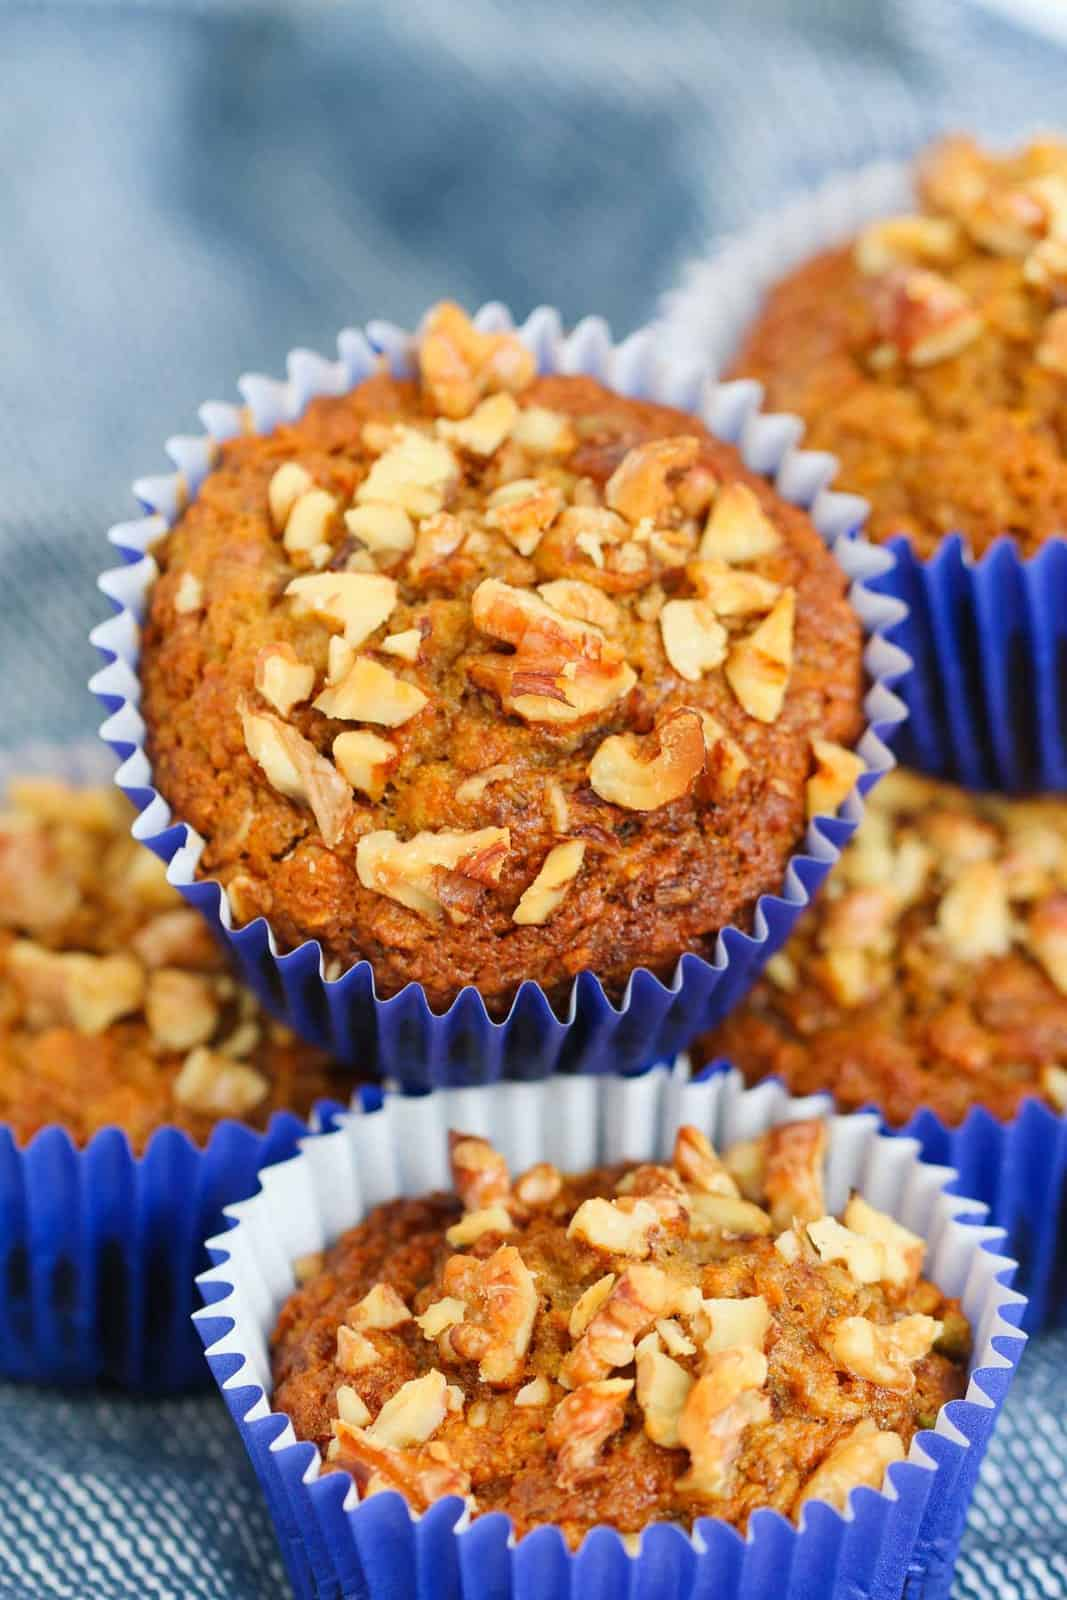 Carrot, banana, apple and oat muffins.